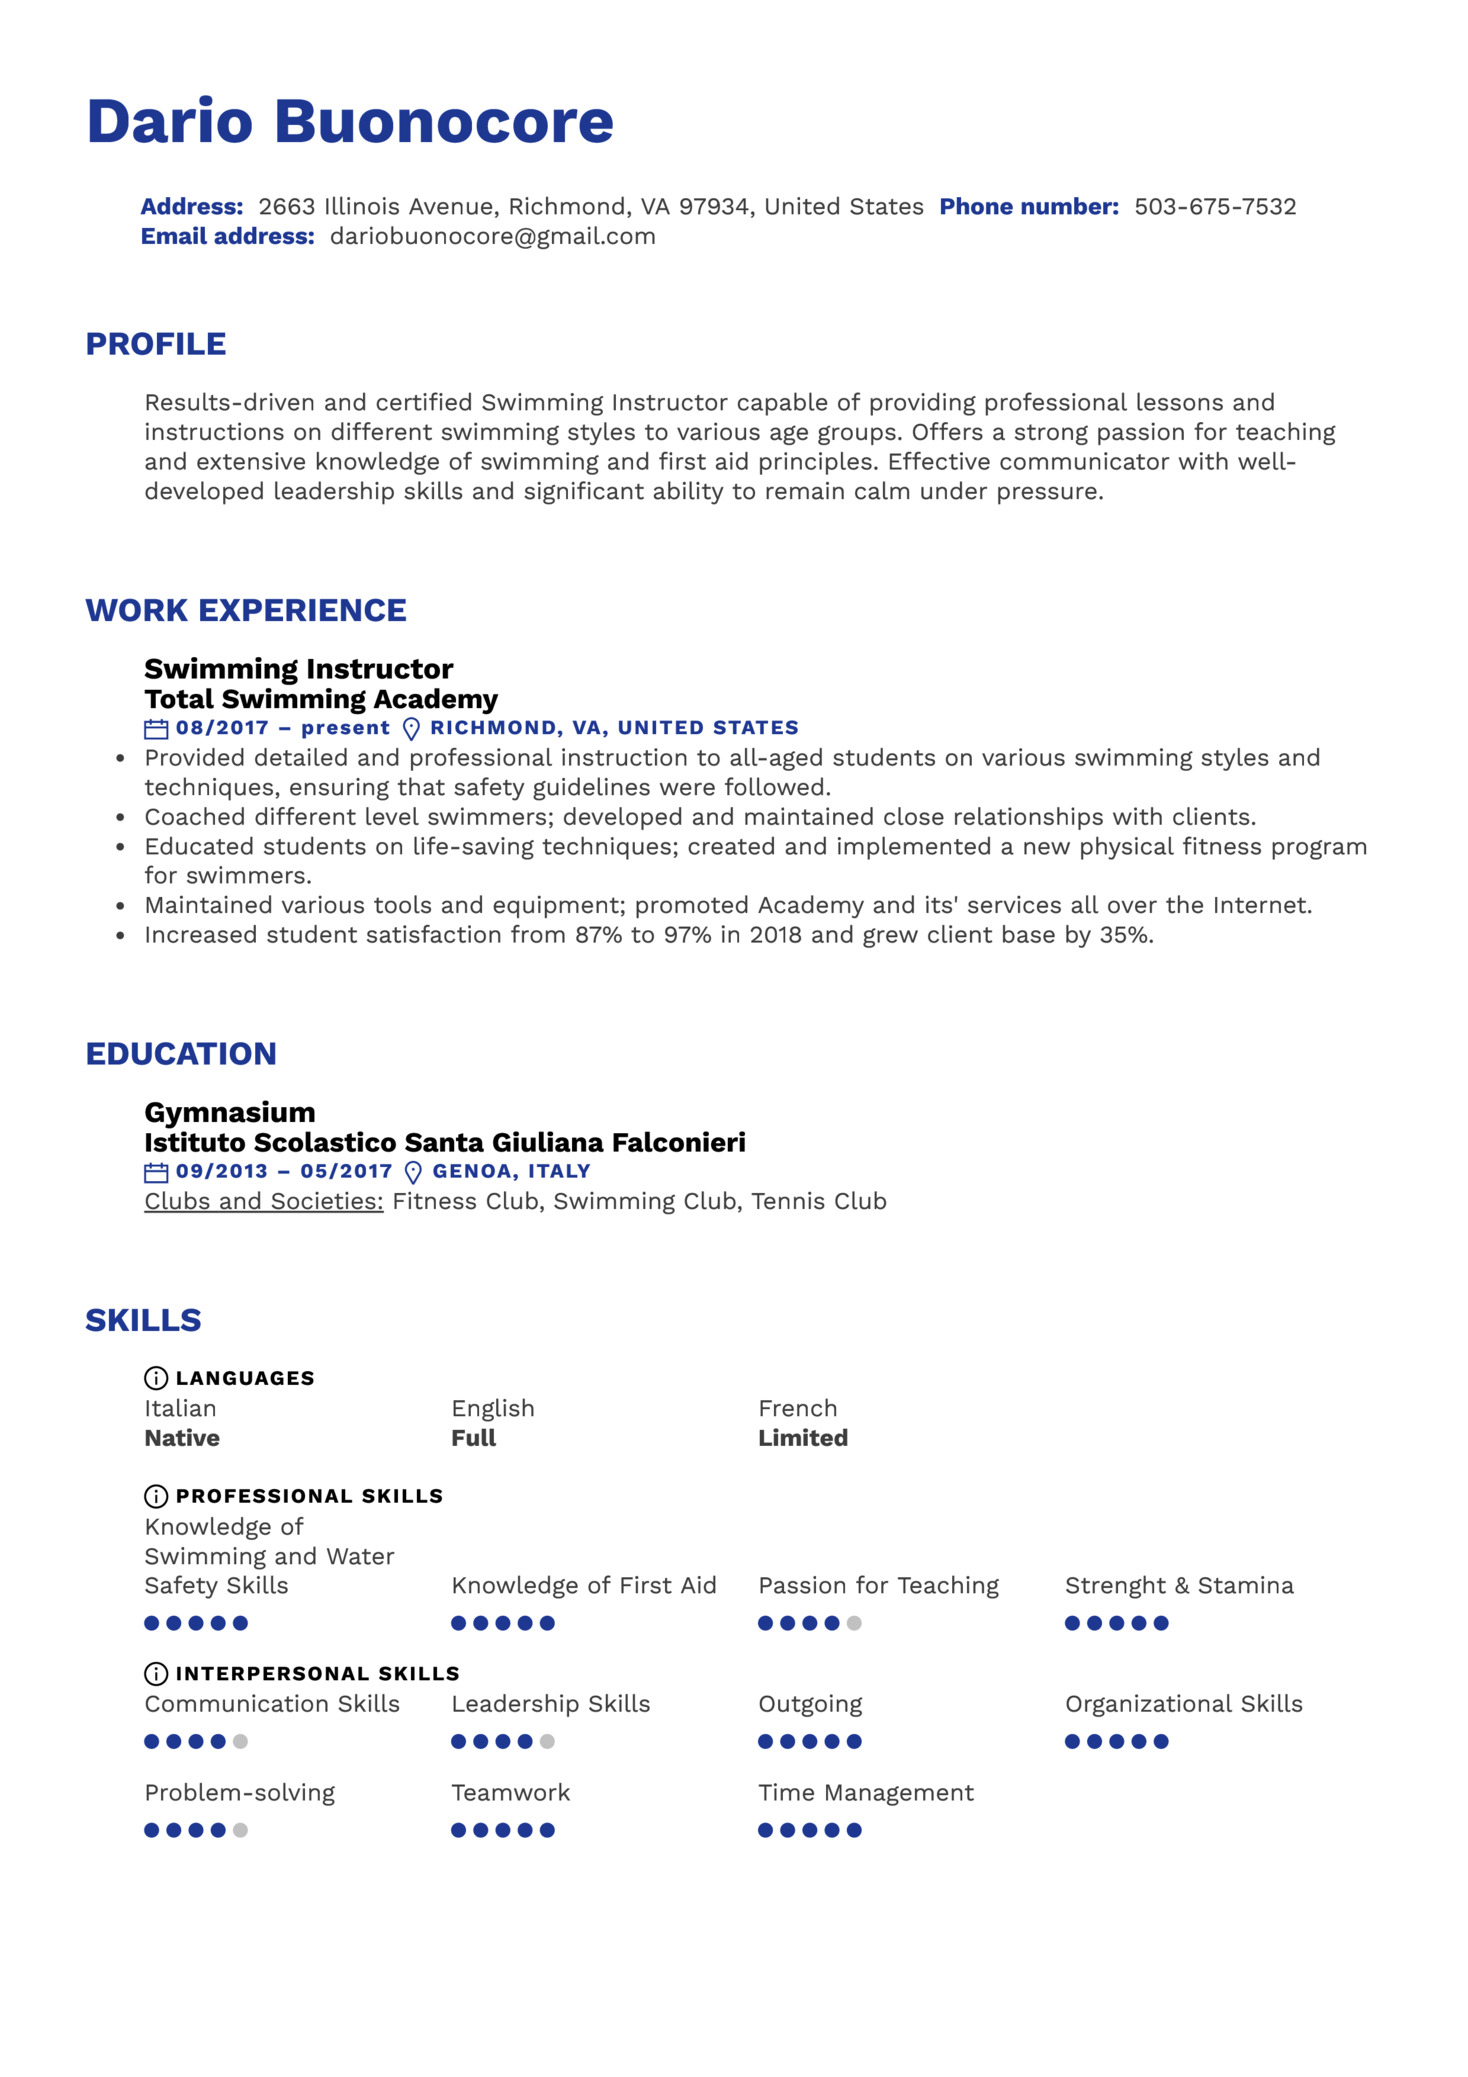 Swimming Instructor Resume Sample (parte 1)